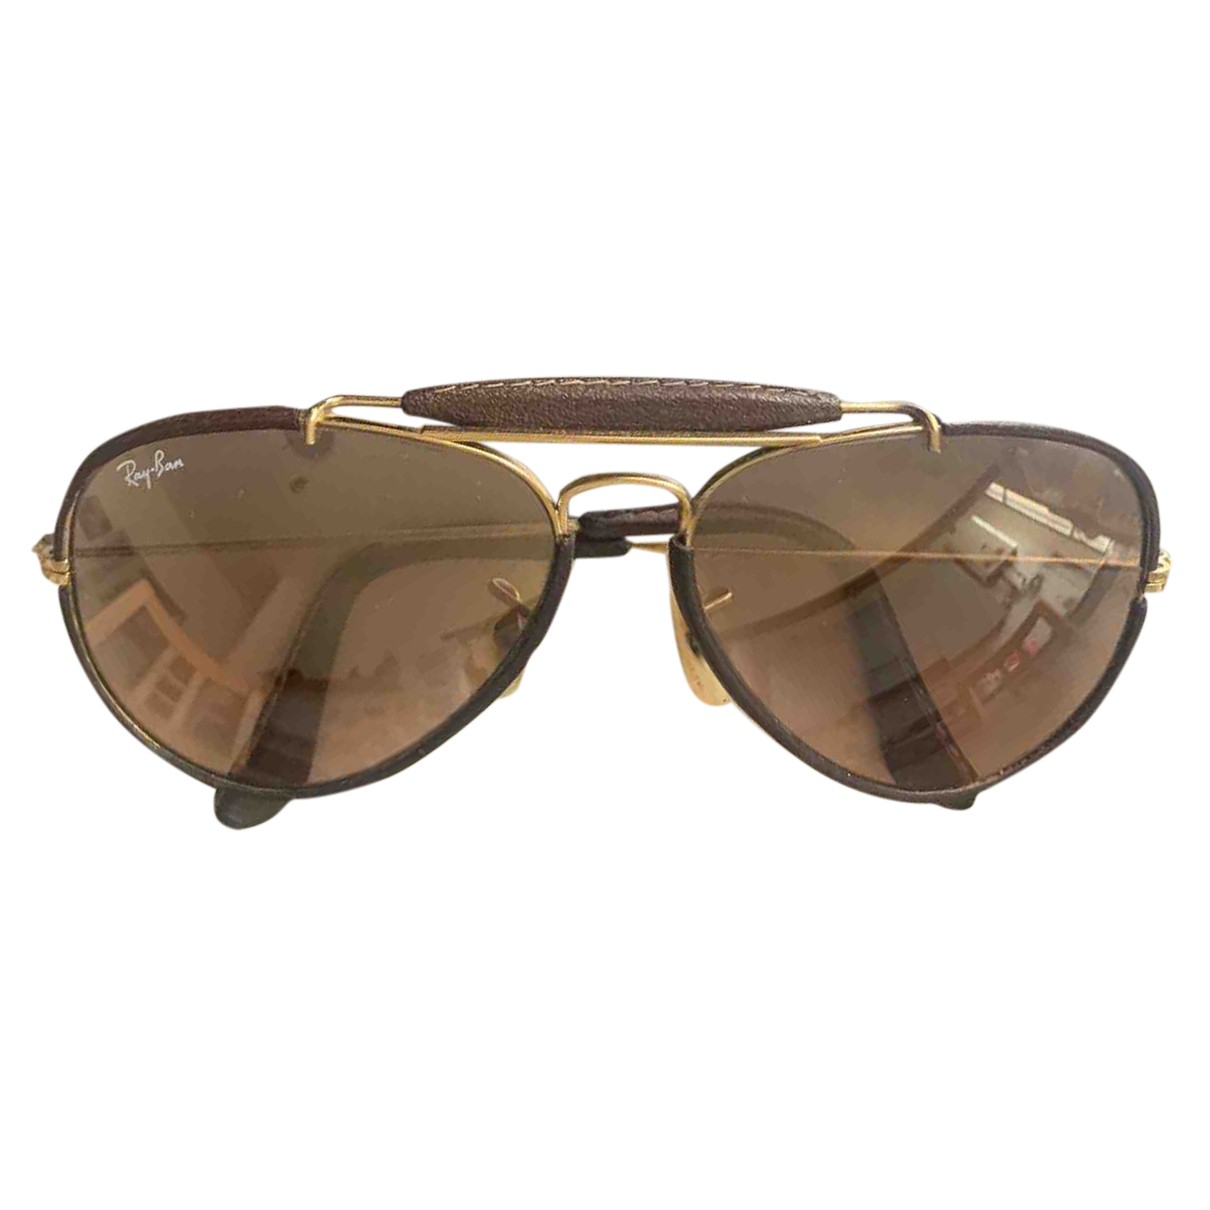 Ray-ban Aviator Brown Leather Sunglasses for Men N